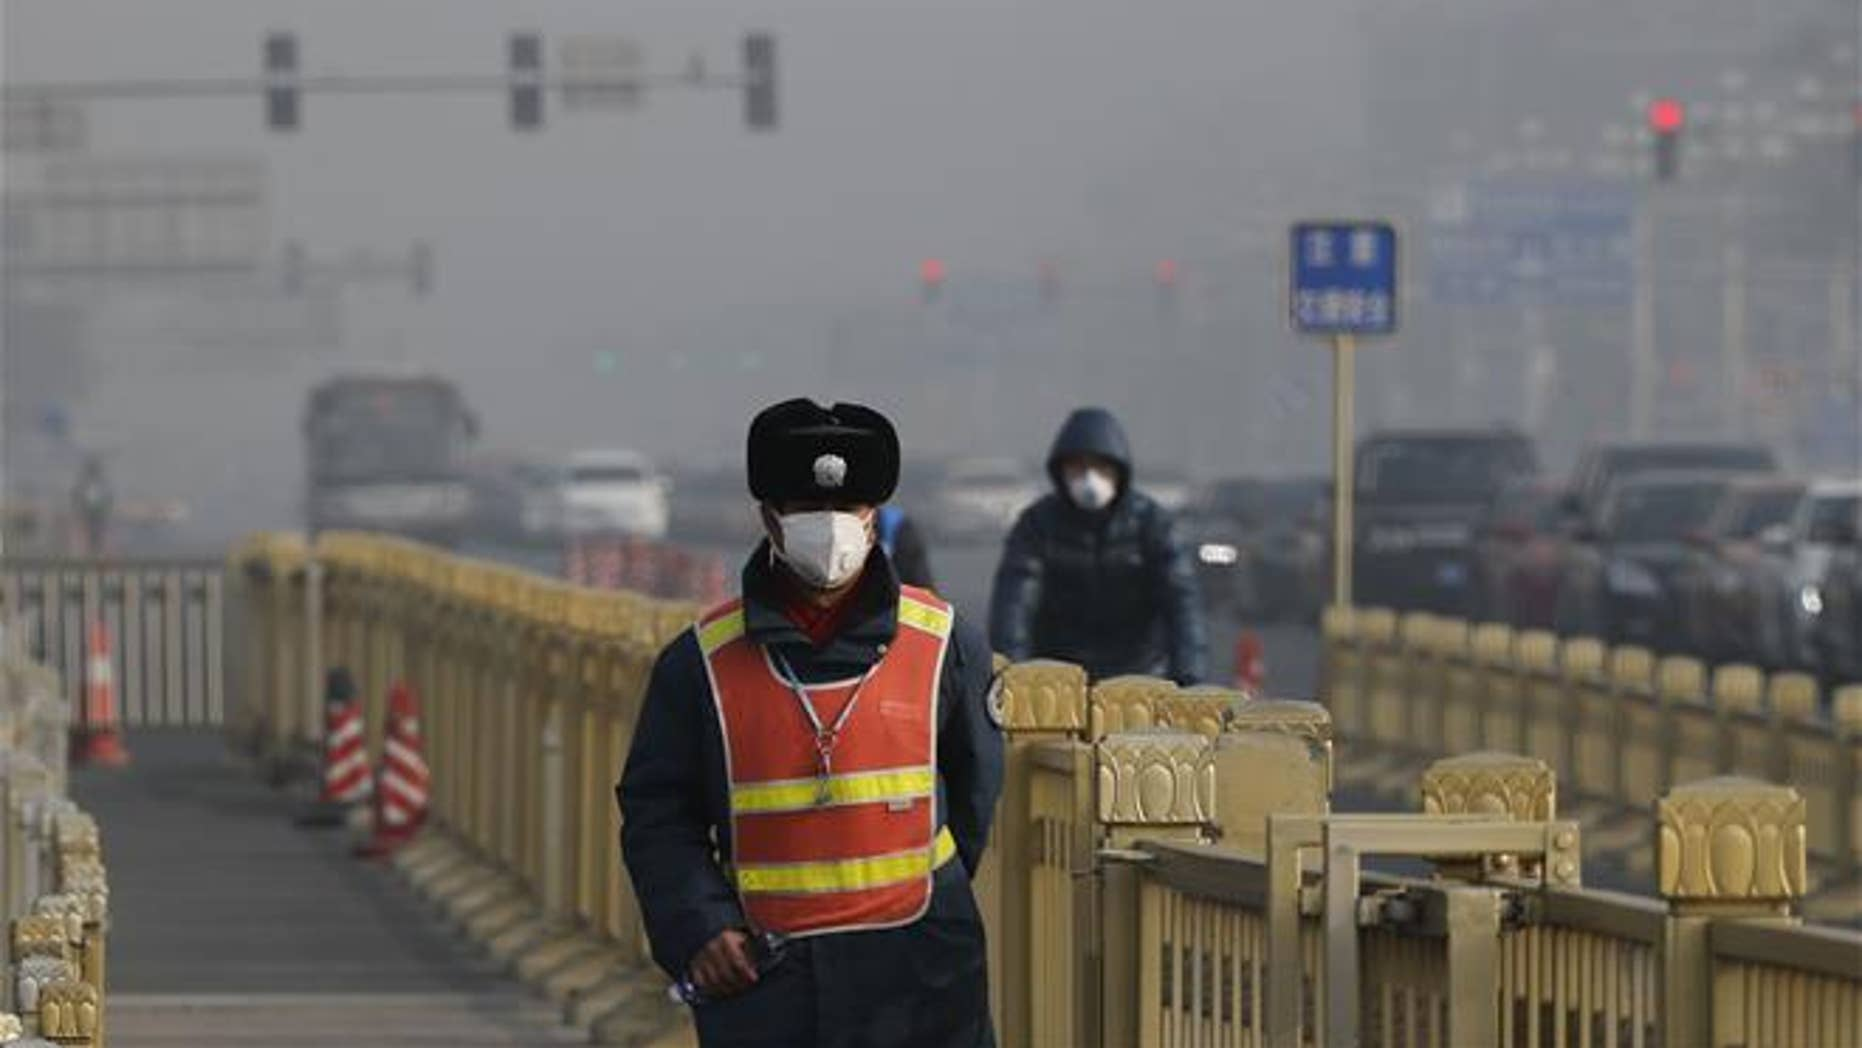 A traffic warden wearing a protection mask walks on a street near Tiananmen Square in Beijing as the capital of China is blanketed by heavy smog in this file photo.